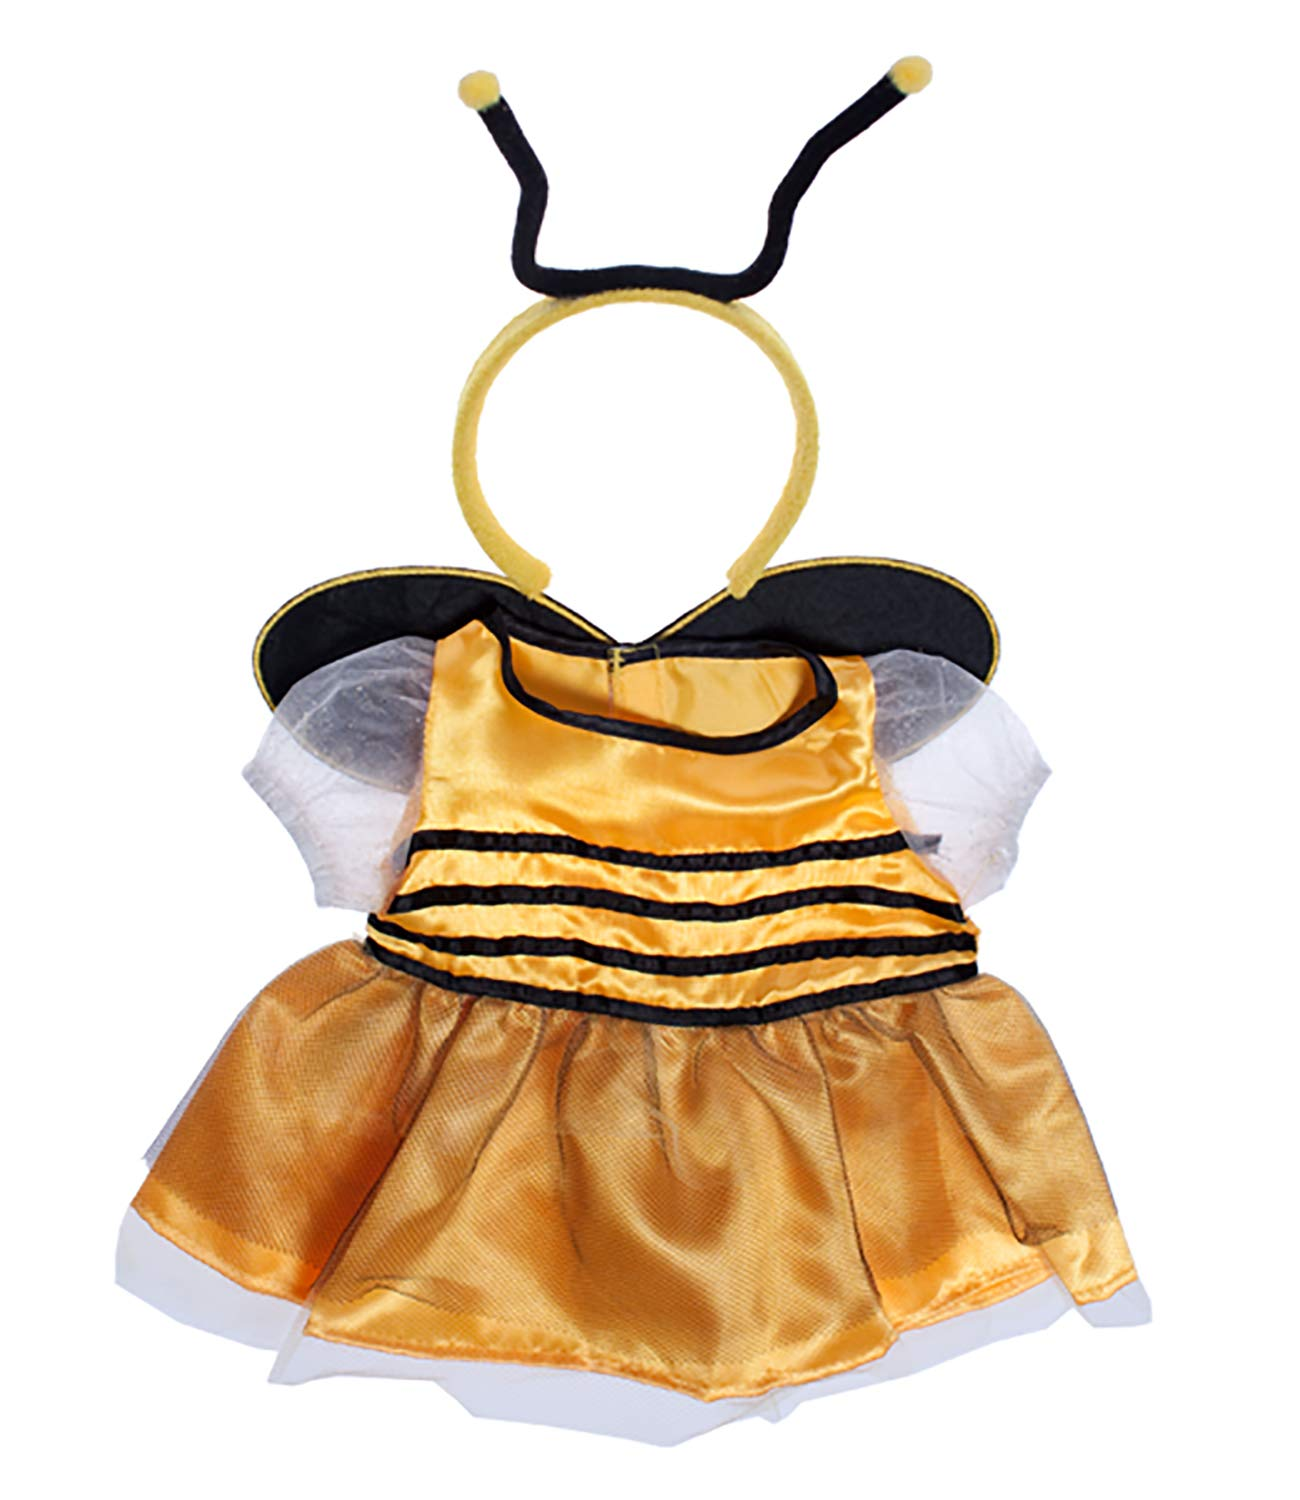 Bee Dress w/Antenna Teddy Bear Clothes Outfit Fit 14 - 18 Build-a-bear, Vermont Teddy Bears, and Make Your Own Stuffed Animals